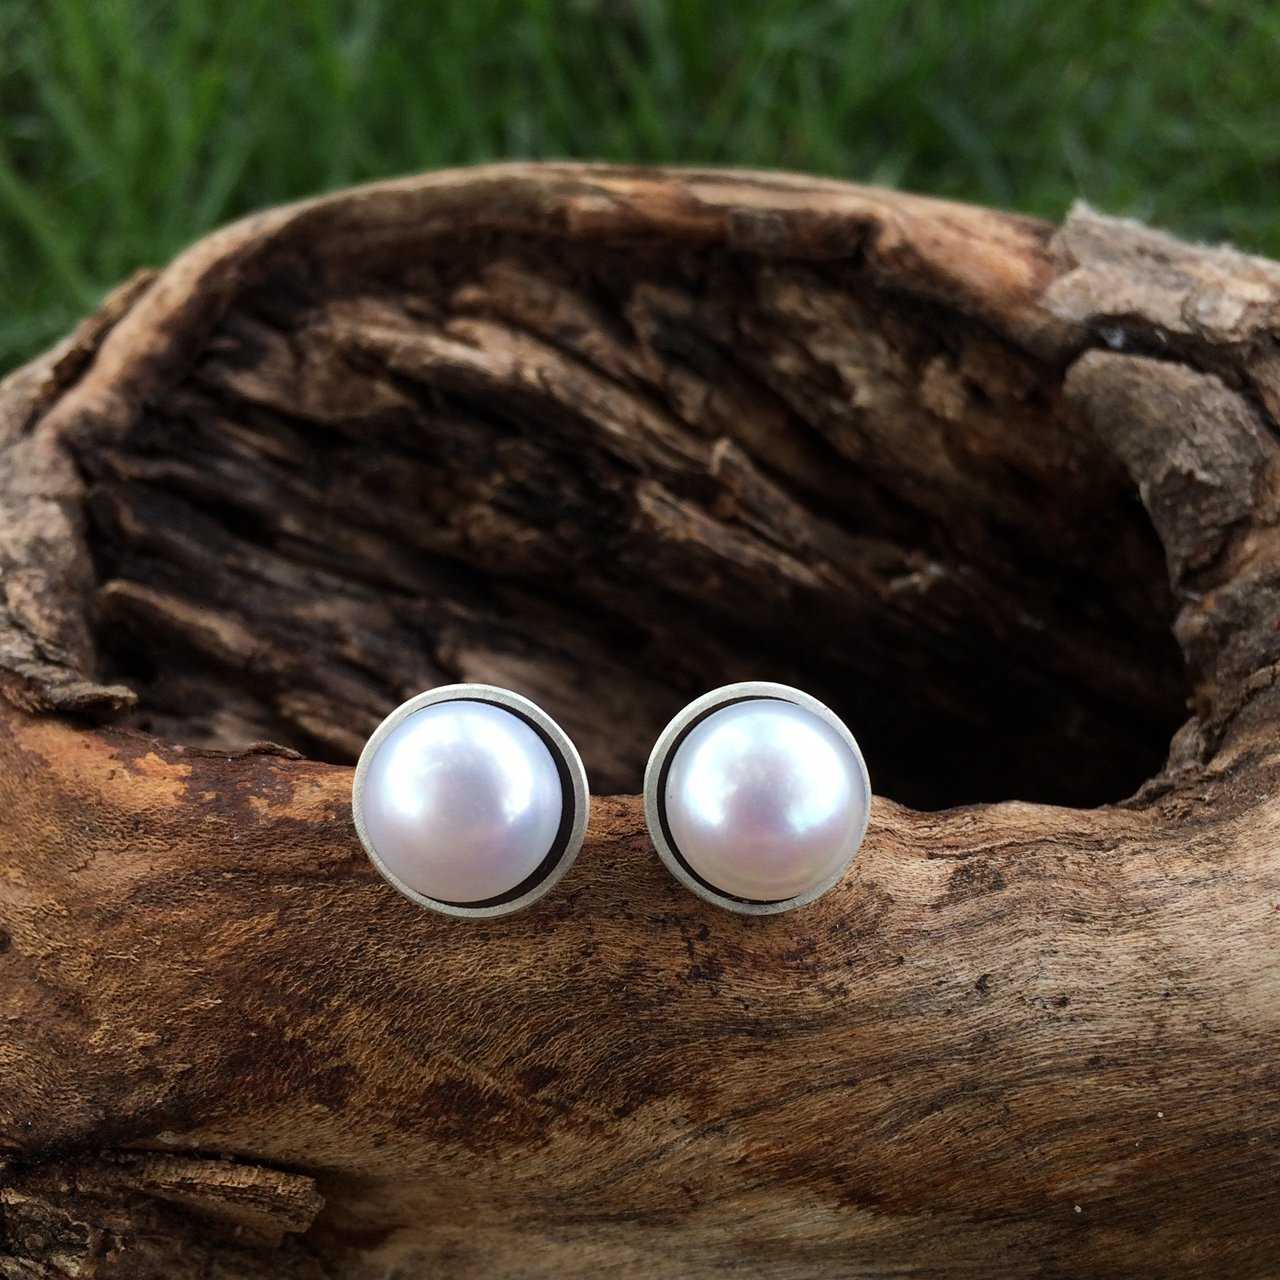 PRETTY PEARLS, WORKSHOP, fitzgerald jewelry school, Fitzgerald Jewelry